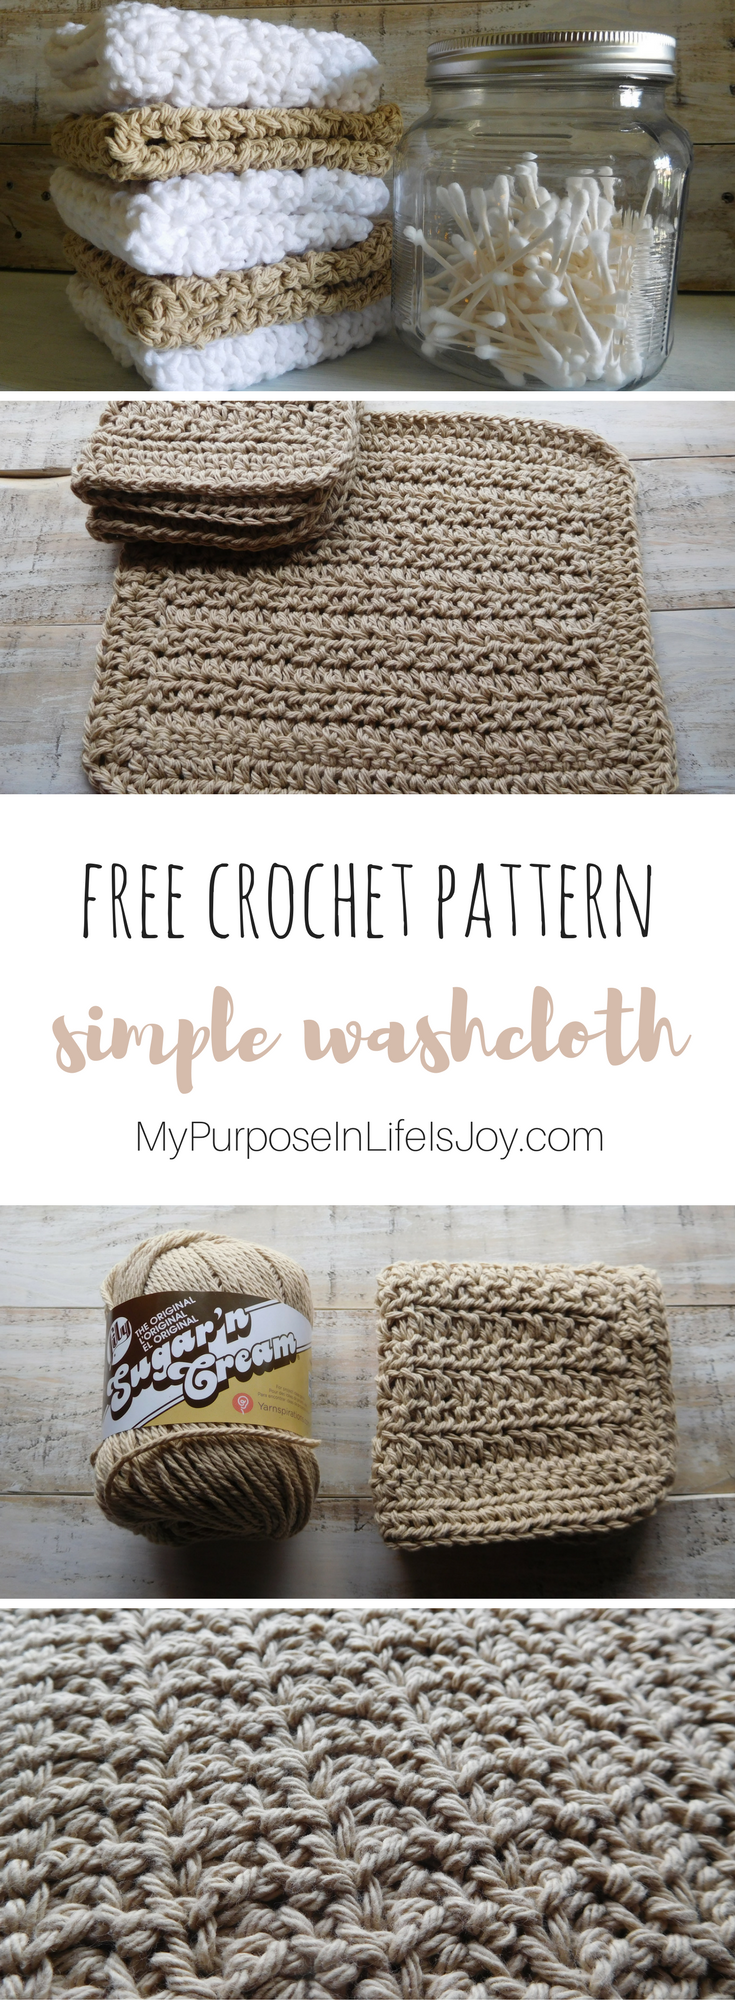 Crochet Washcloth- Simple Free Crochet Pattern and Instructions ...